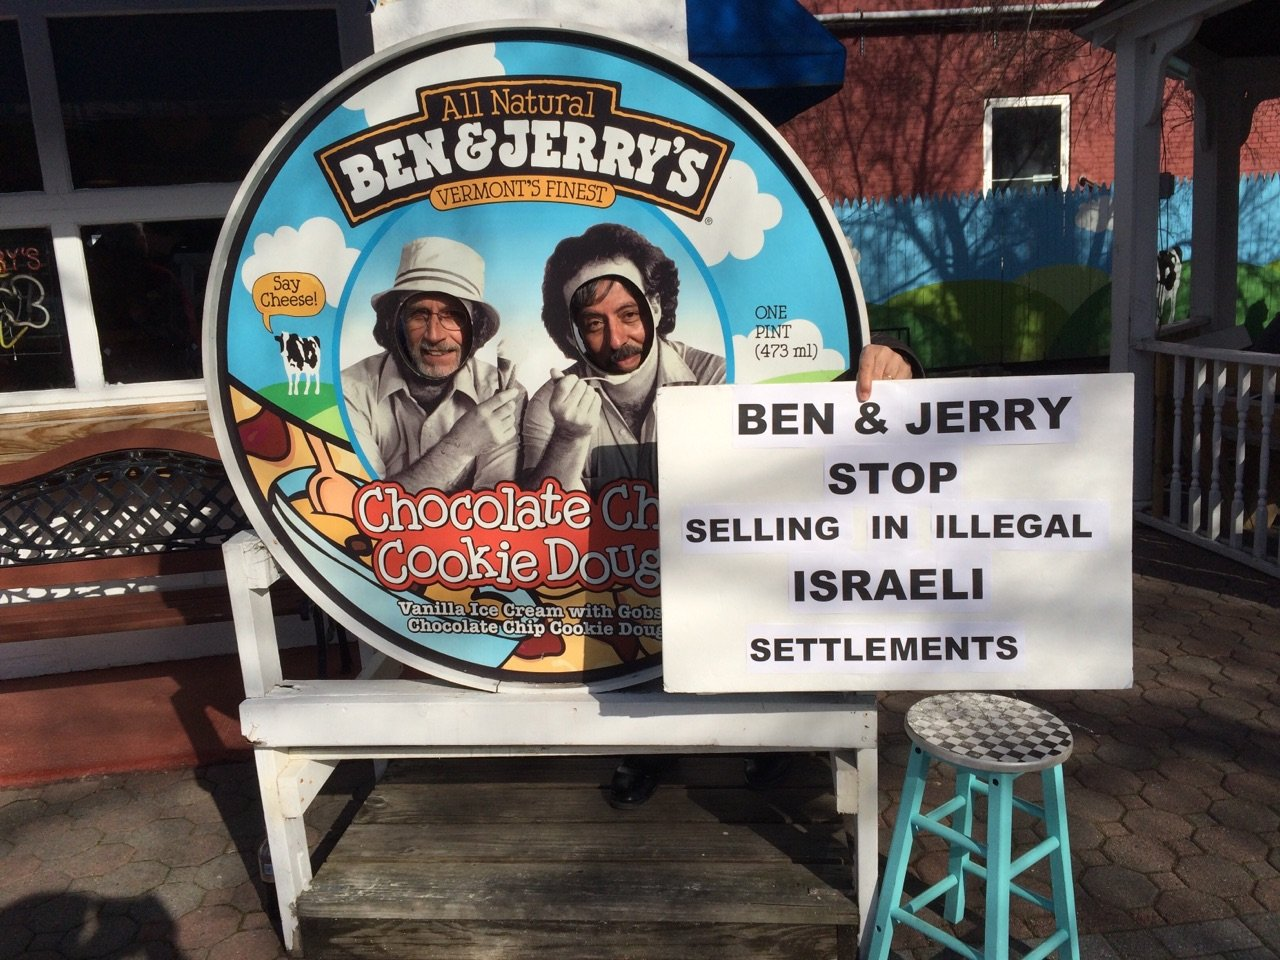 Ben & Jerry's Sells Ice Cream in the Gaza Strip